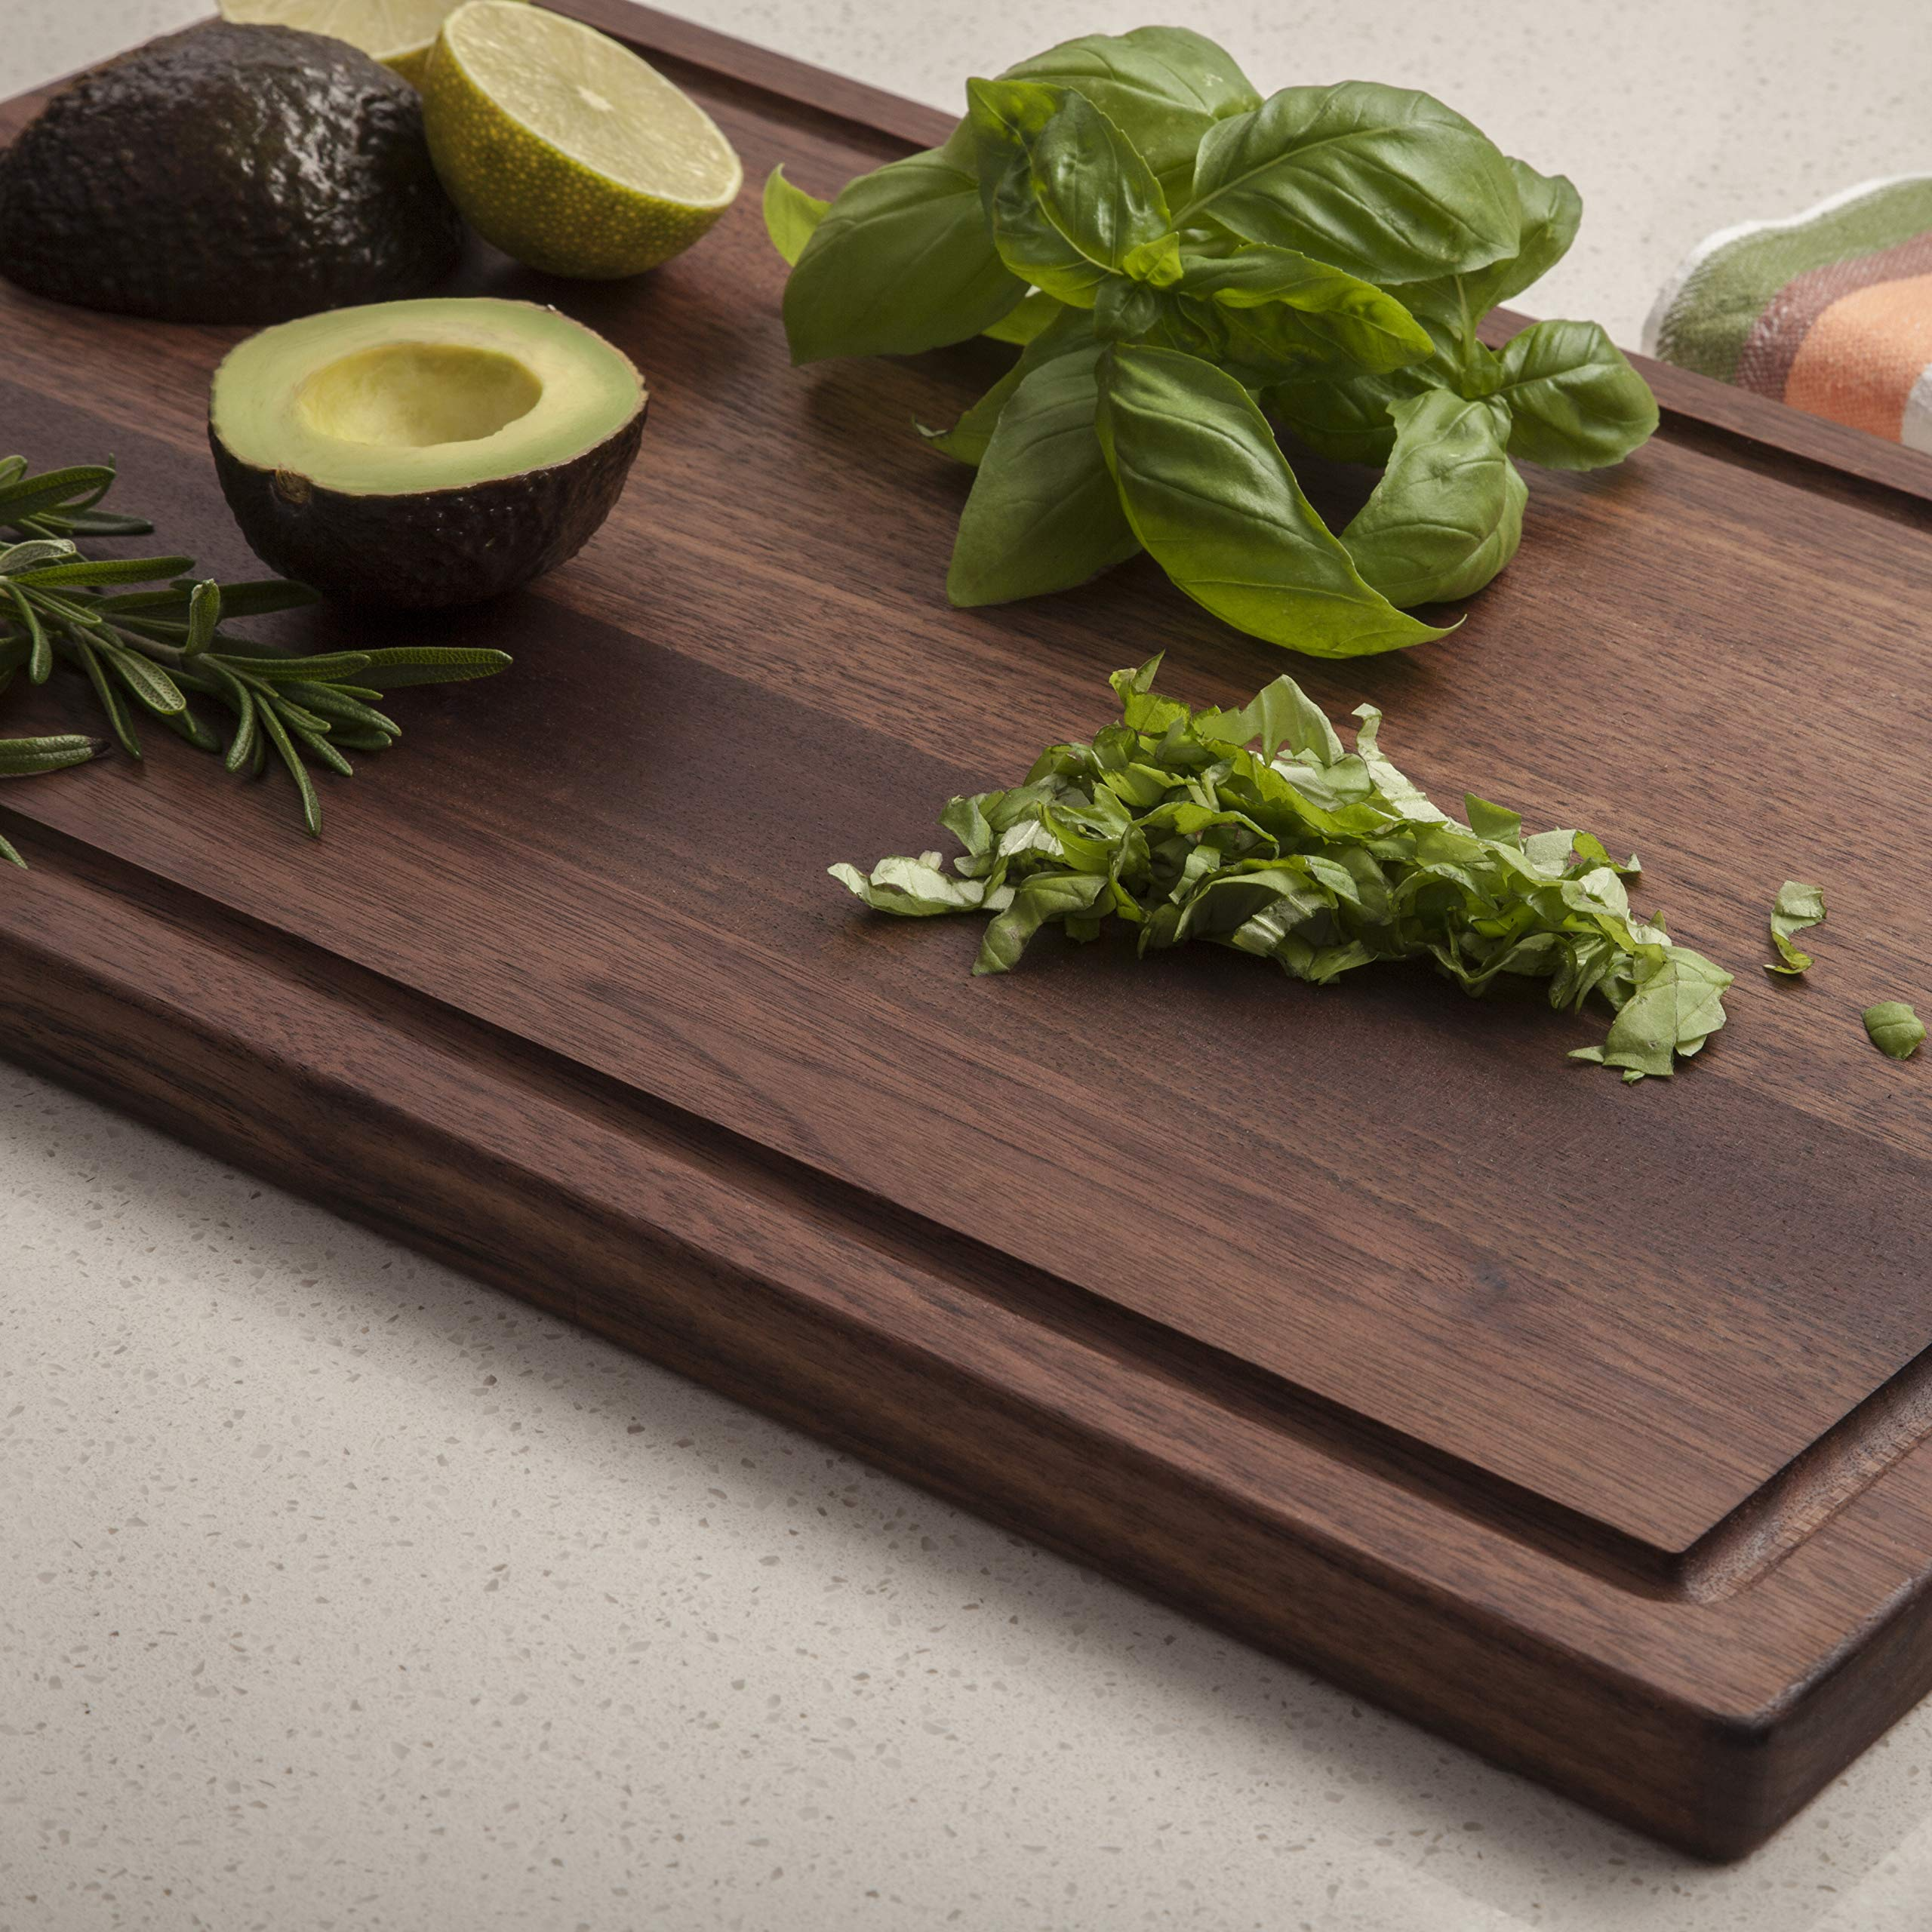 Boilton Large Walnut Wood Cutting Board - 17x11 with Juice Drip Groove, Big American Hardwood Chopping and Carving Countertop Block by Boilton (Image #6)